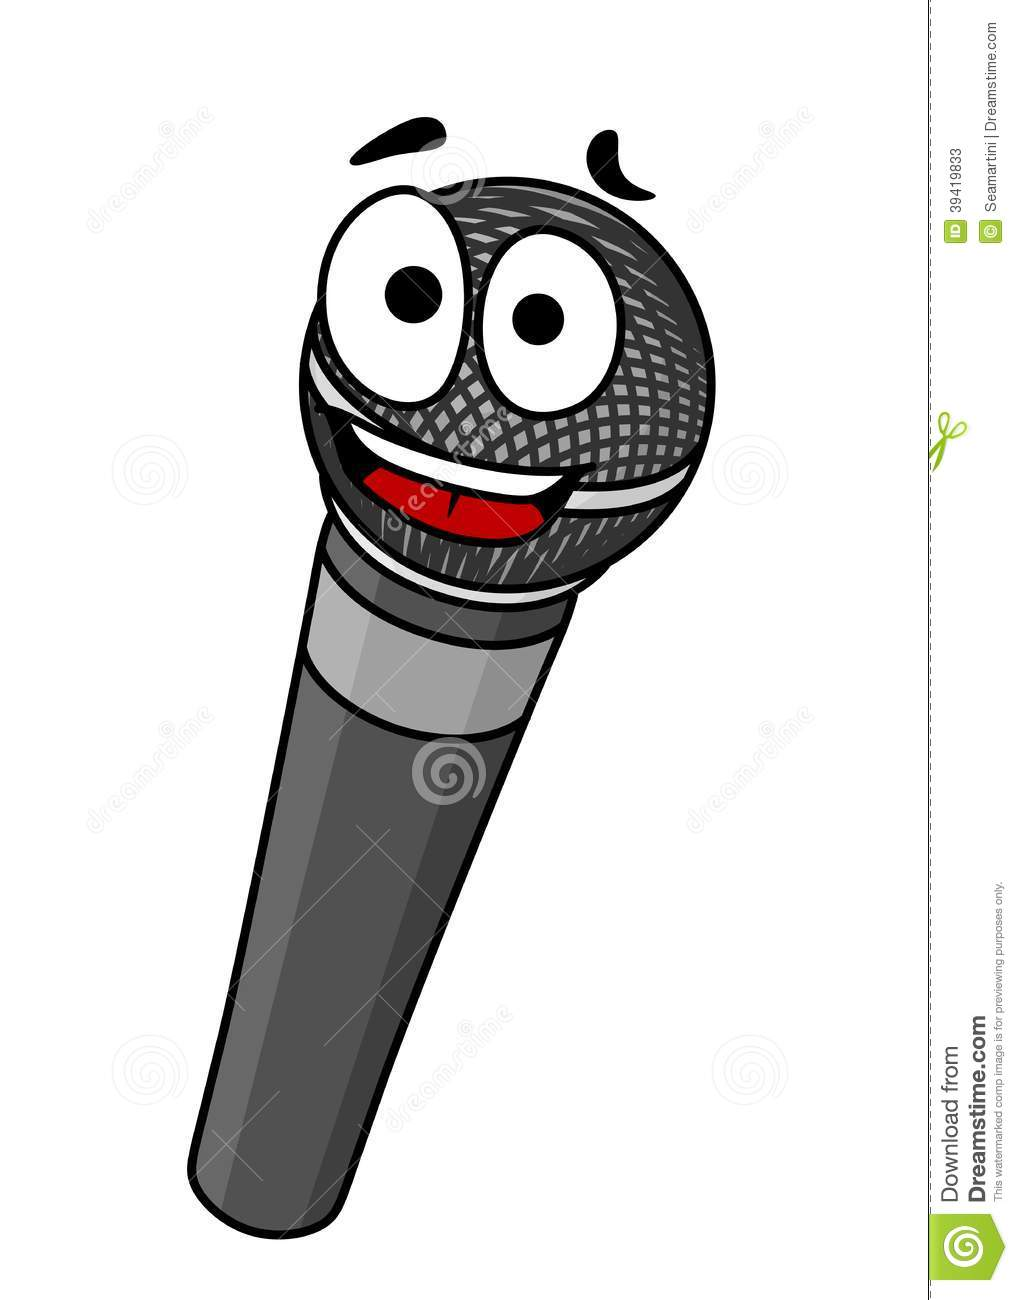 Cartoon Handheld Microphone Stock Vector Image 39419833